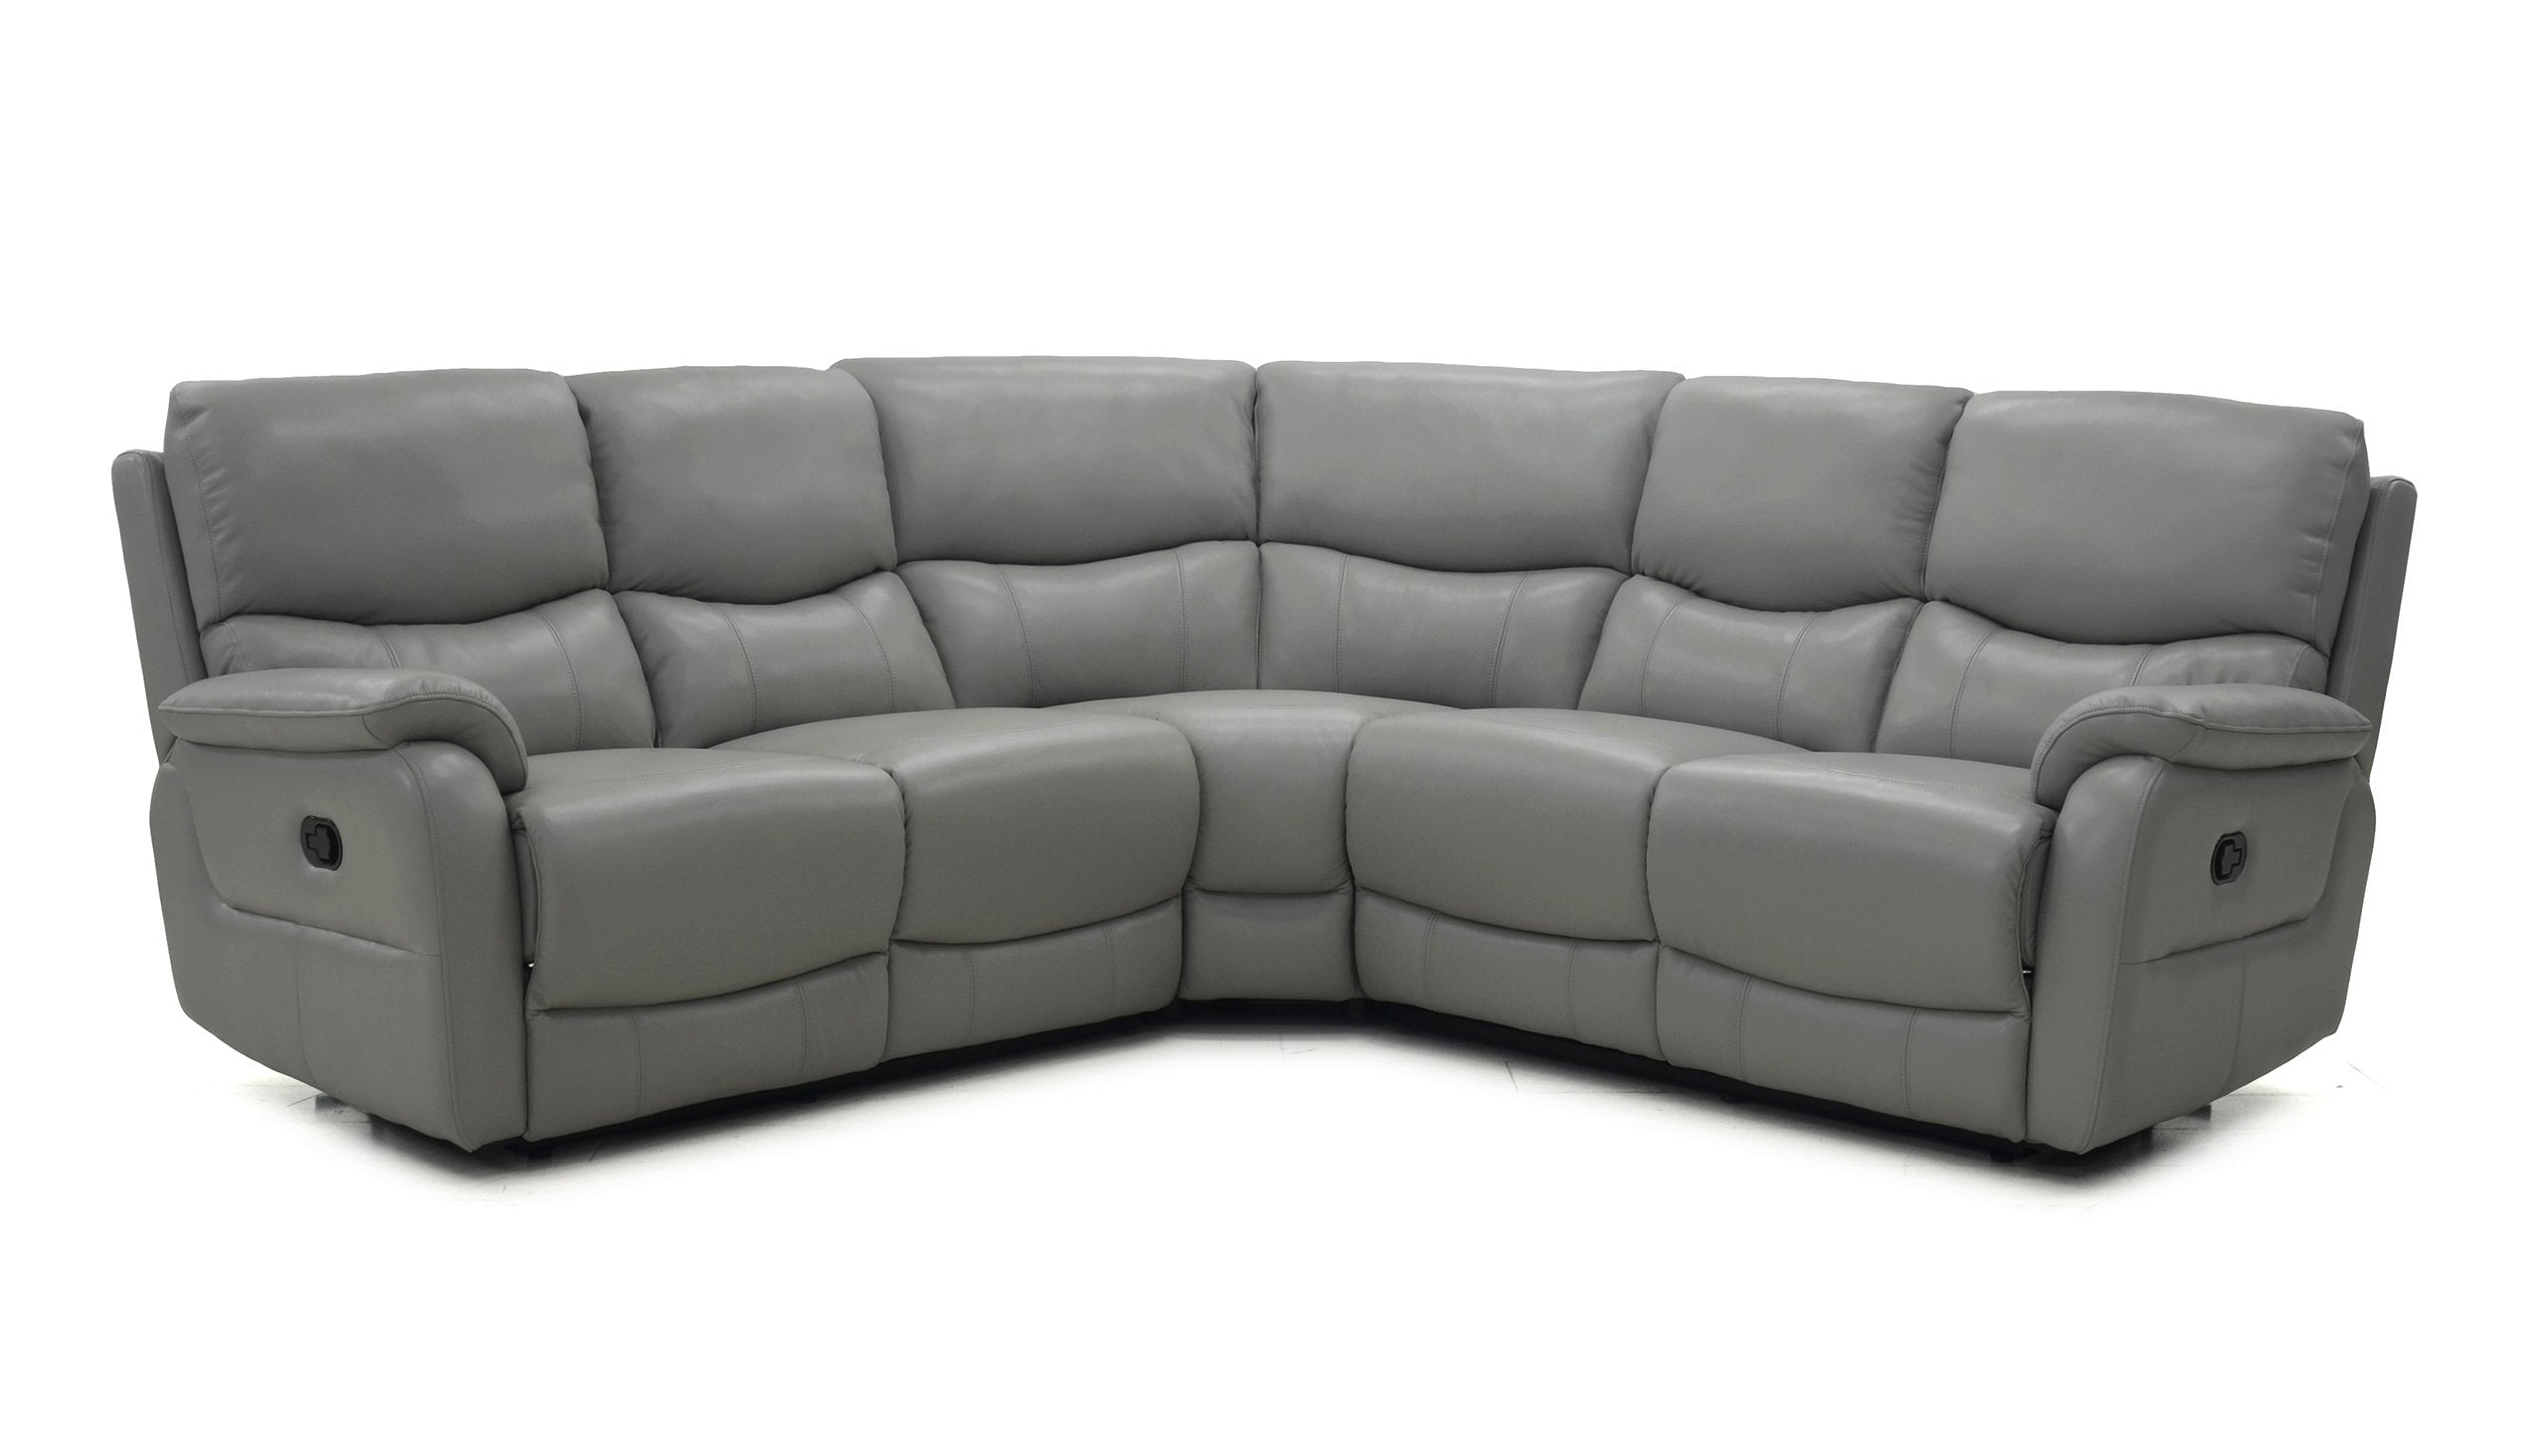 Evelyn Large Power Corner Sofa in Leather - AHF Furniture & Carpets